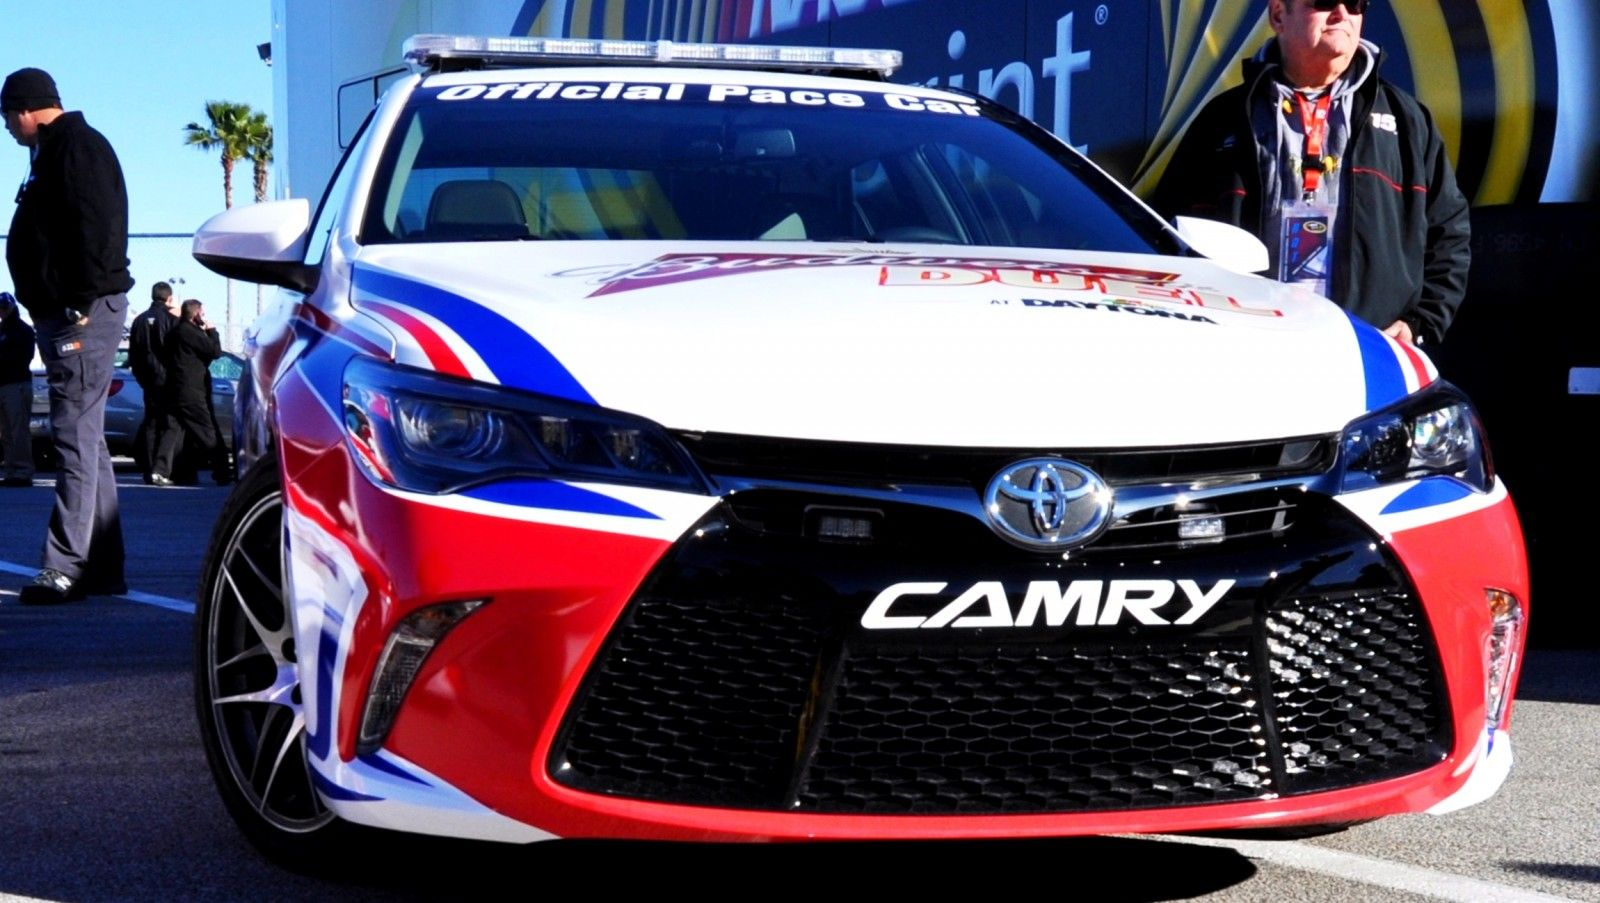 2017 Toyota Camry Daytona 500 Official Pace Car